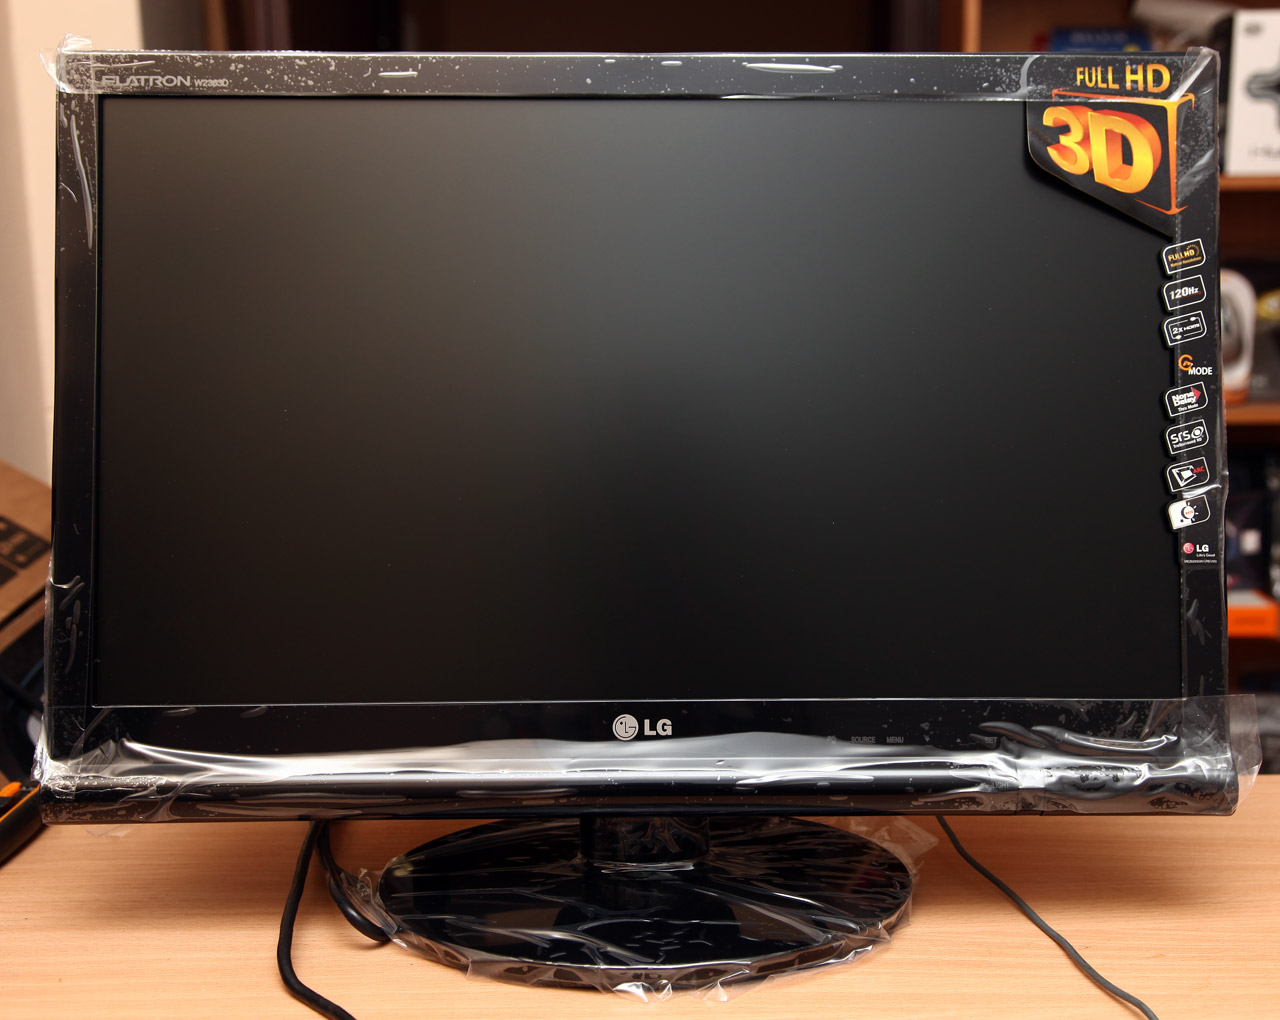 Review of the 23 lg w2363d 120hz full hd 3d gaming monitor